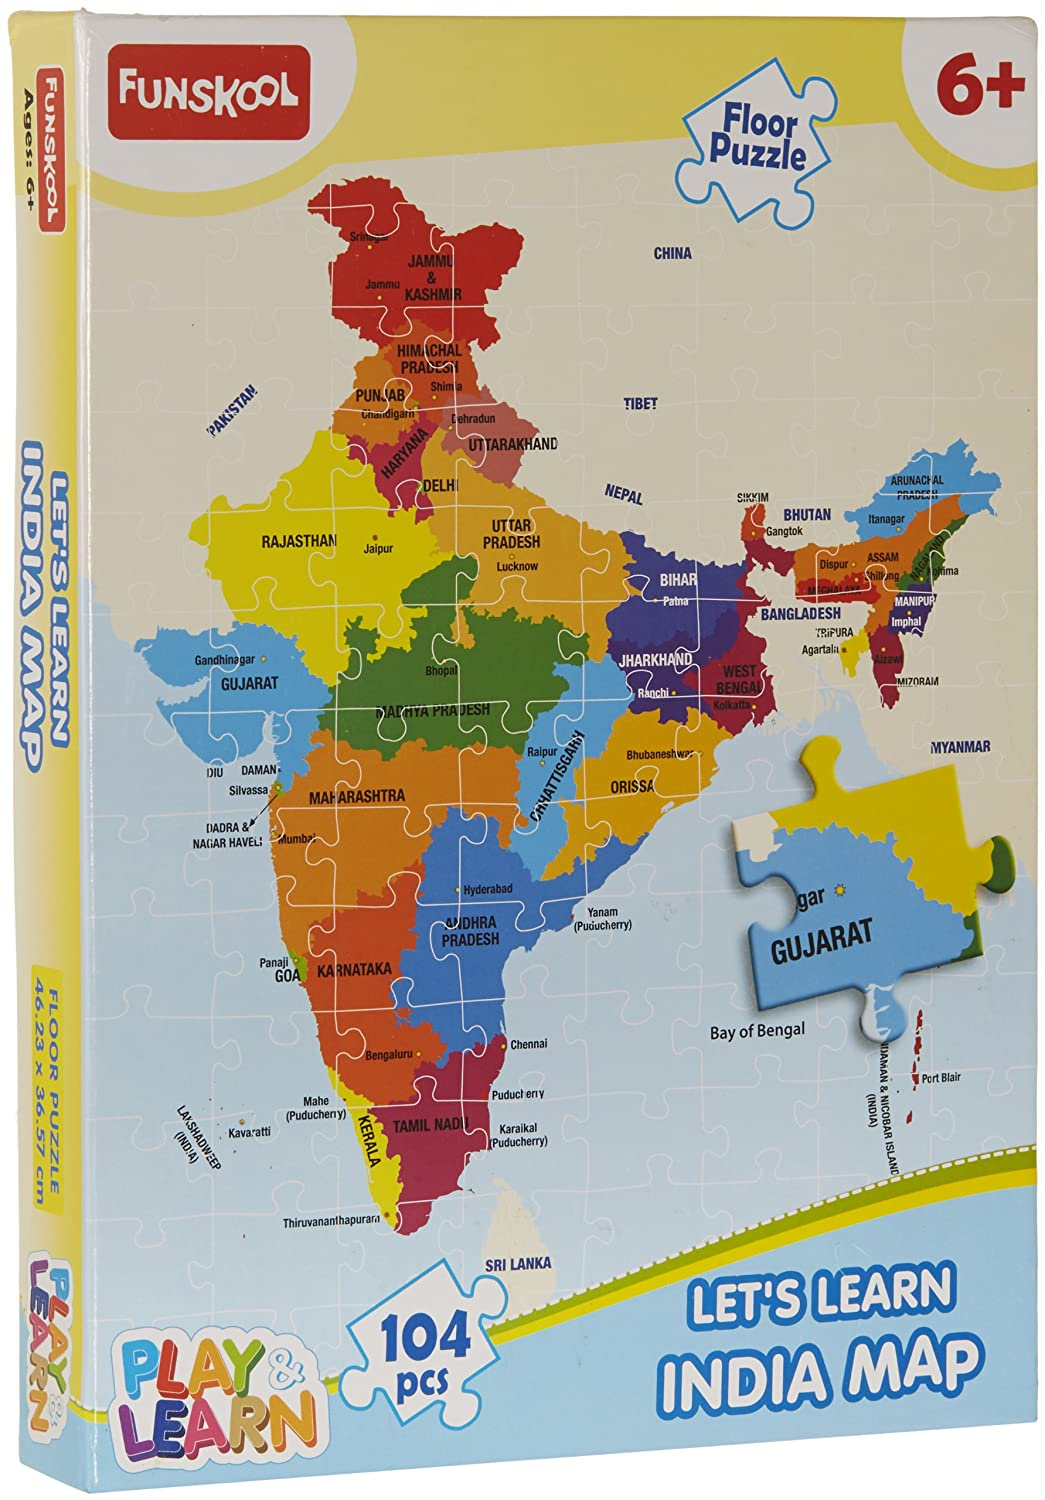 Buy Funskool India Map Puzzles Online At Low Prices In India - Us states map puzzle game